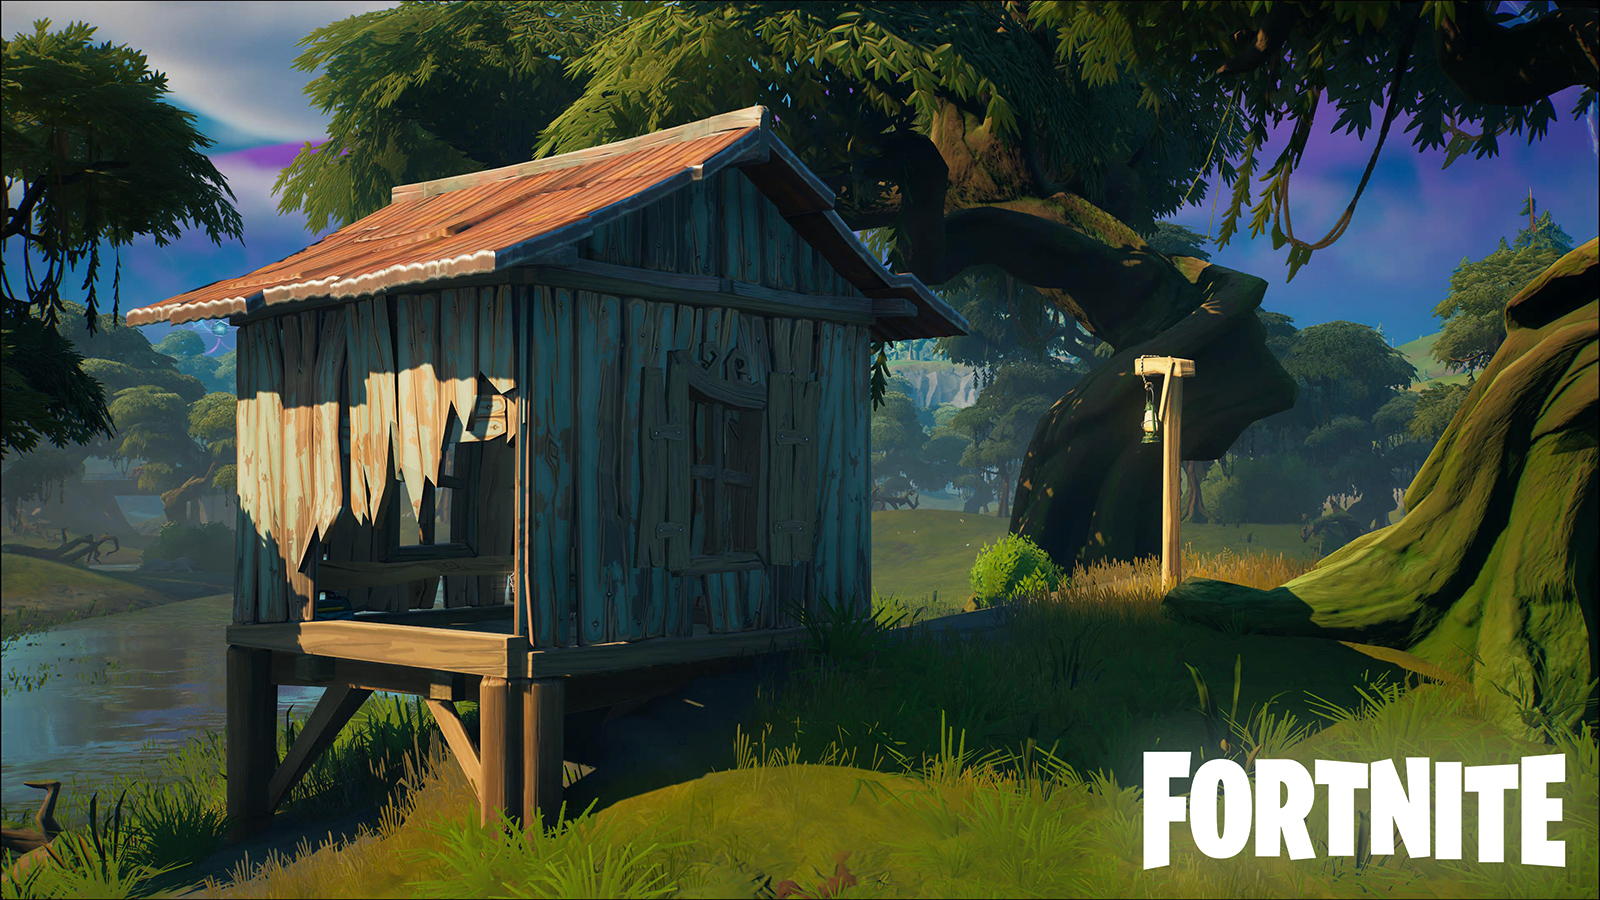 Fortnite Slurpy Swamp Houses